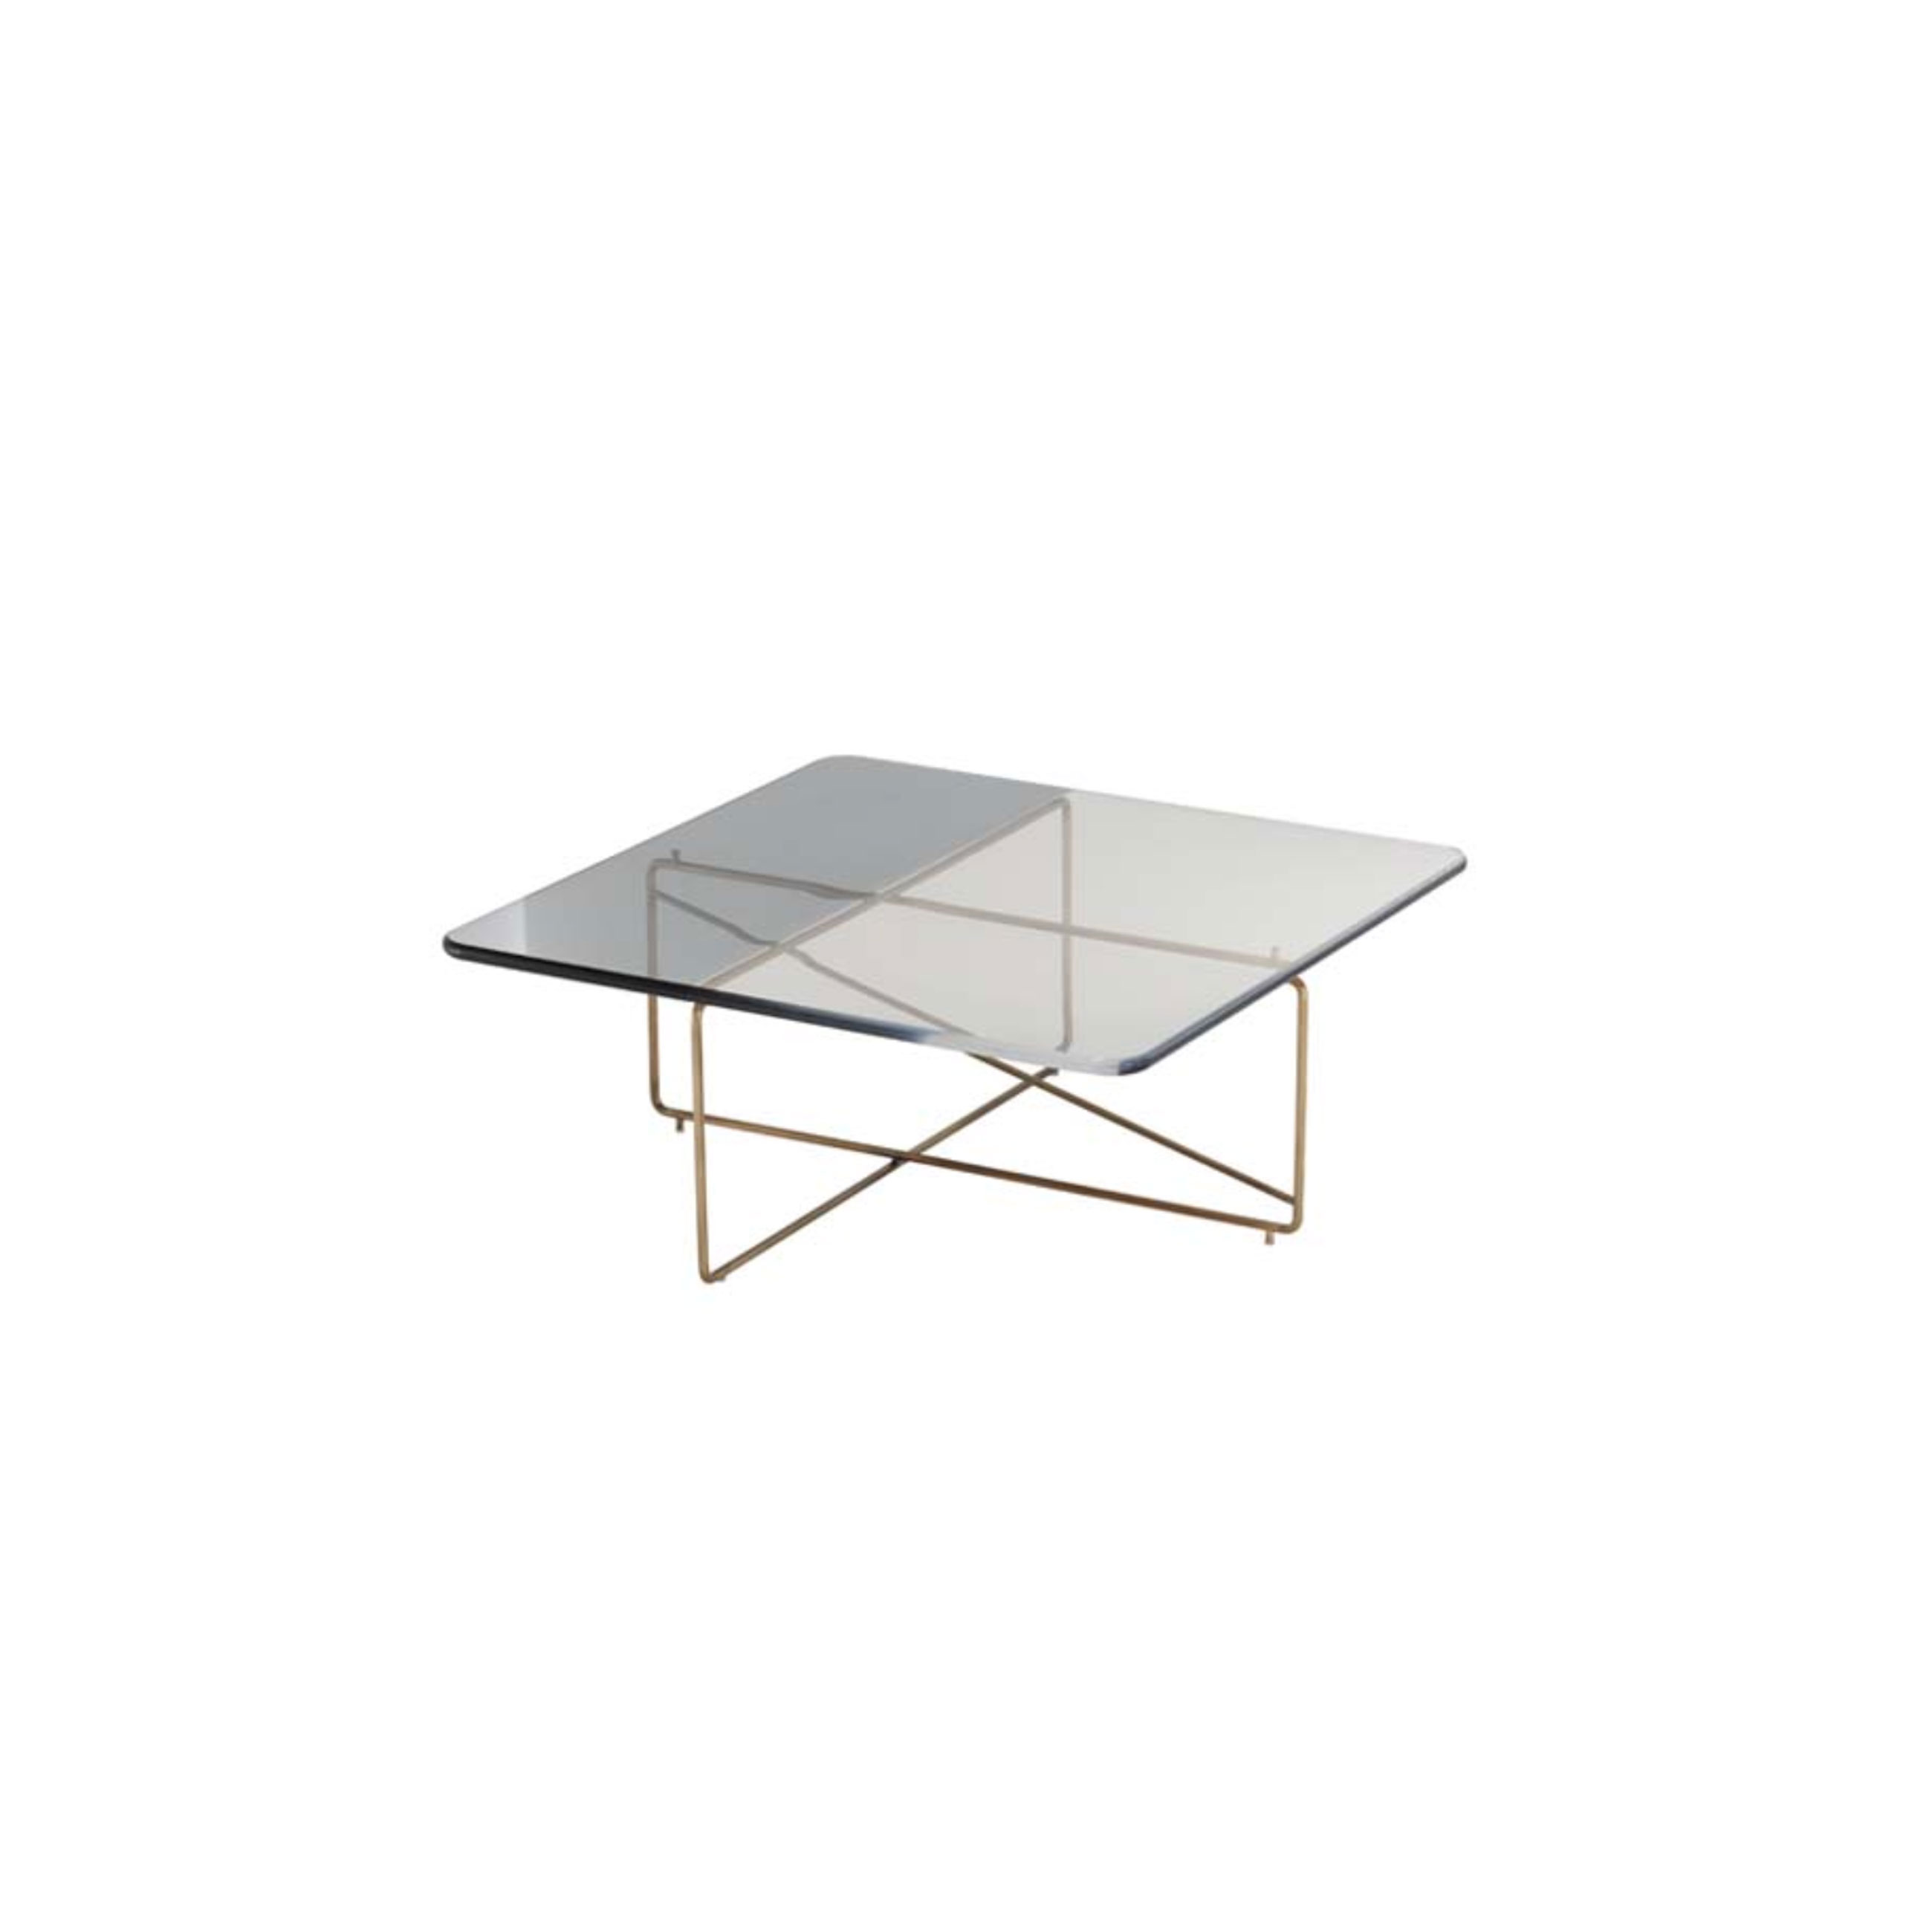 """Ametrino 02 Coffee Table - Side table with brass structures and top in bicolored methacrylate. Ametrino is part of Empirica Family. """"A creative process grown with the experience. There is a real connection between the human being and his creations, a chemical bond that is expressed through the unusual combination of elements that leads to an original and unexpected result. The Collection """"Empirica"""" is the result of a quick thought, an automatic gesture, a spontaneous sign, brass structures treated with special coating are mixed with methacrylate surfaces characterized by exclusive shades.""""  